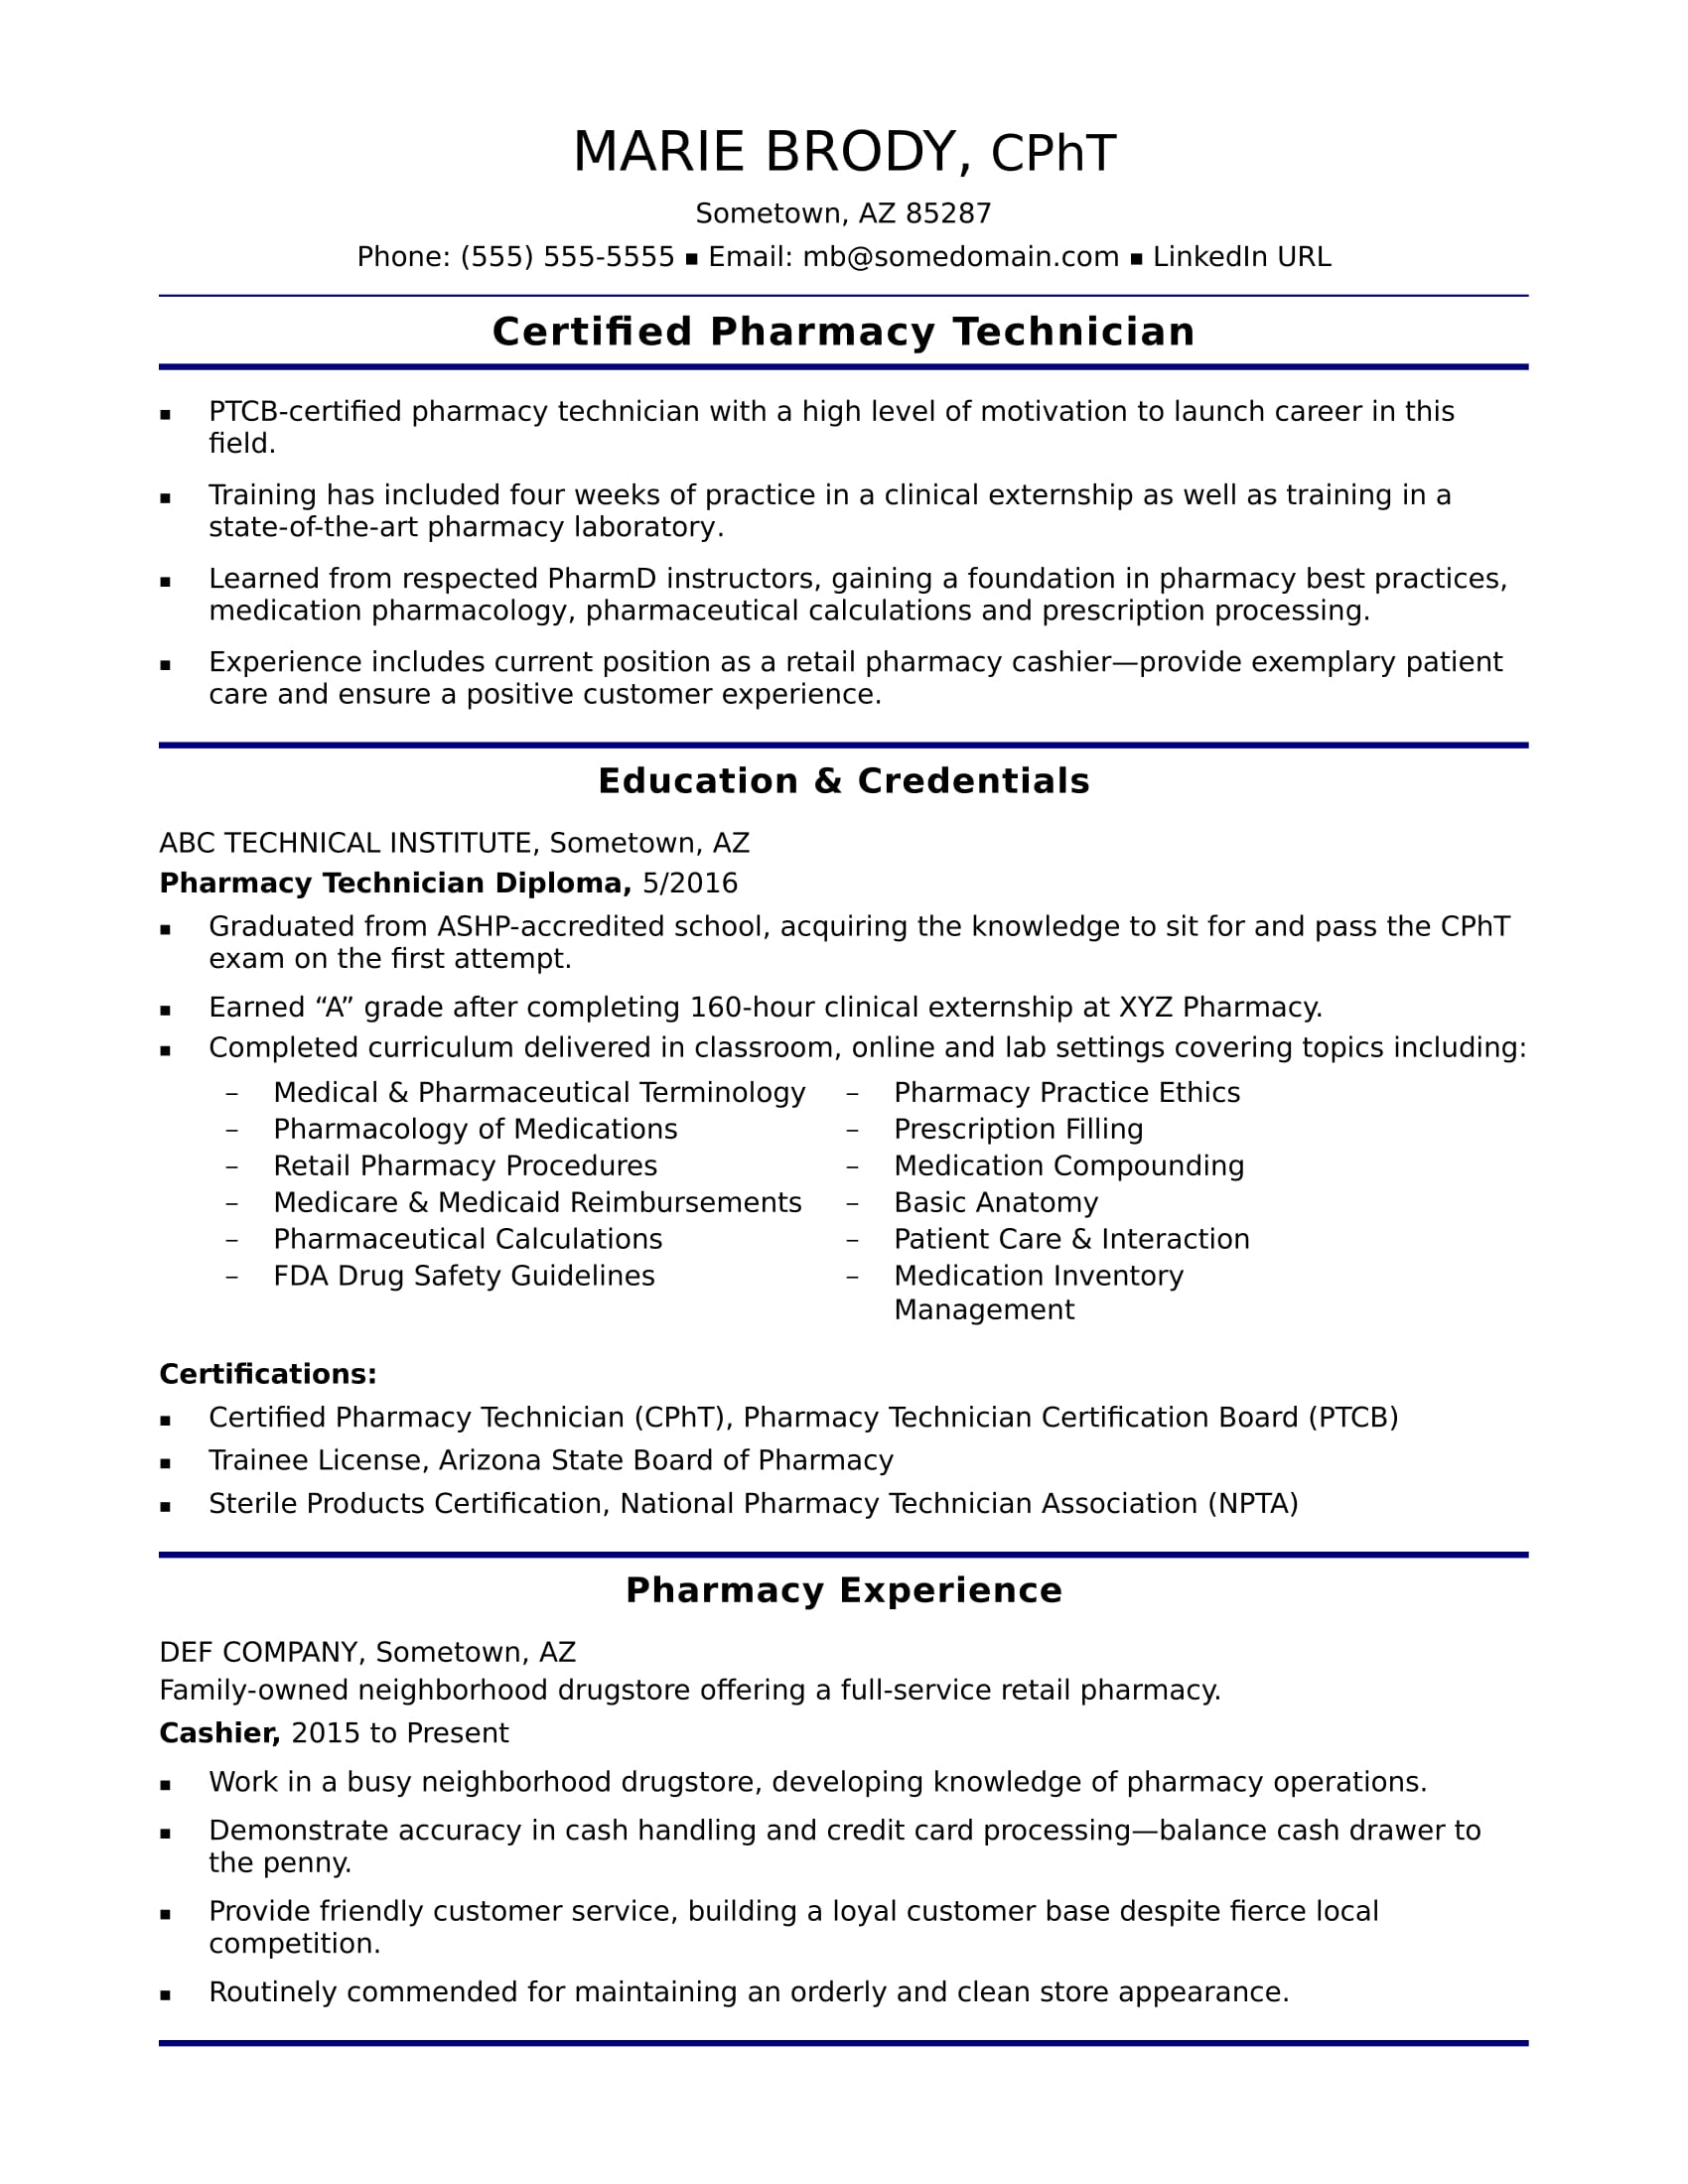 resume technician template electronics examples satellite job description along with Resume Certificates And Licenses On Resume